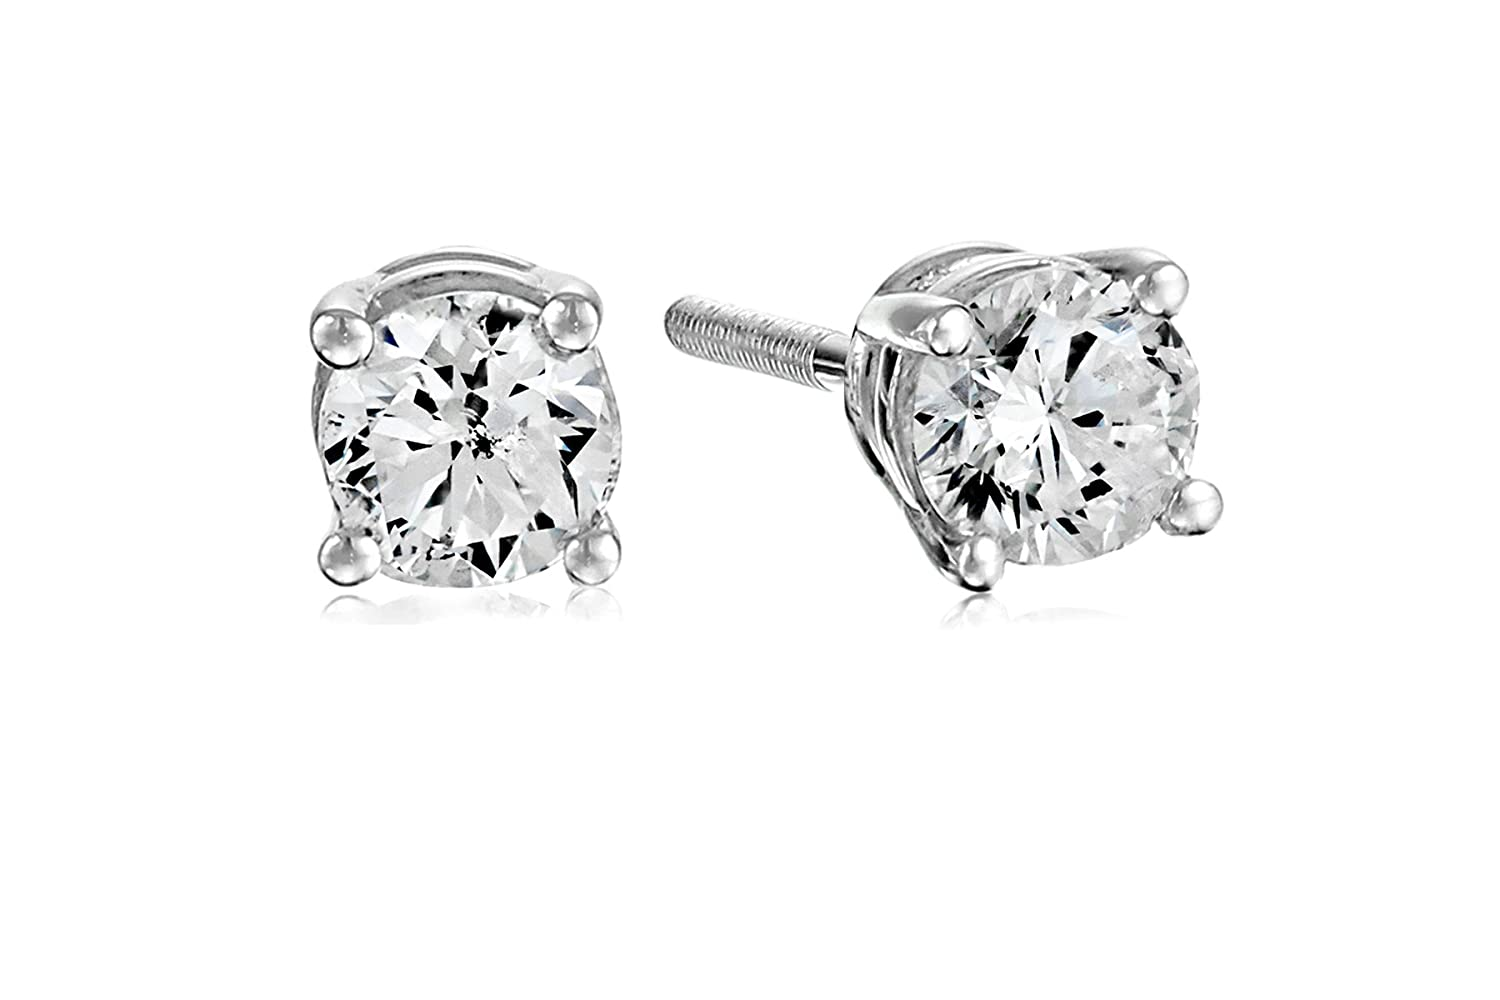 88c80743c Certified 14k White Gold Diamond with Screw Back and Post Stud Earrings  (J-K Color,